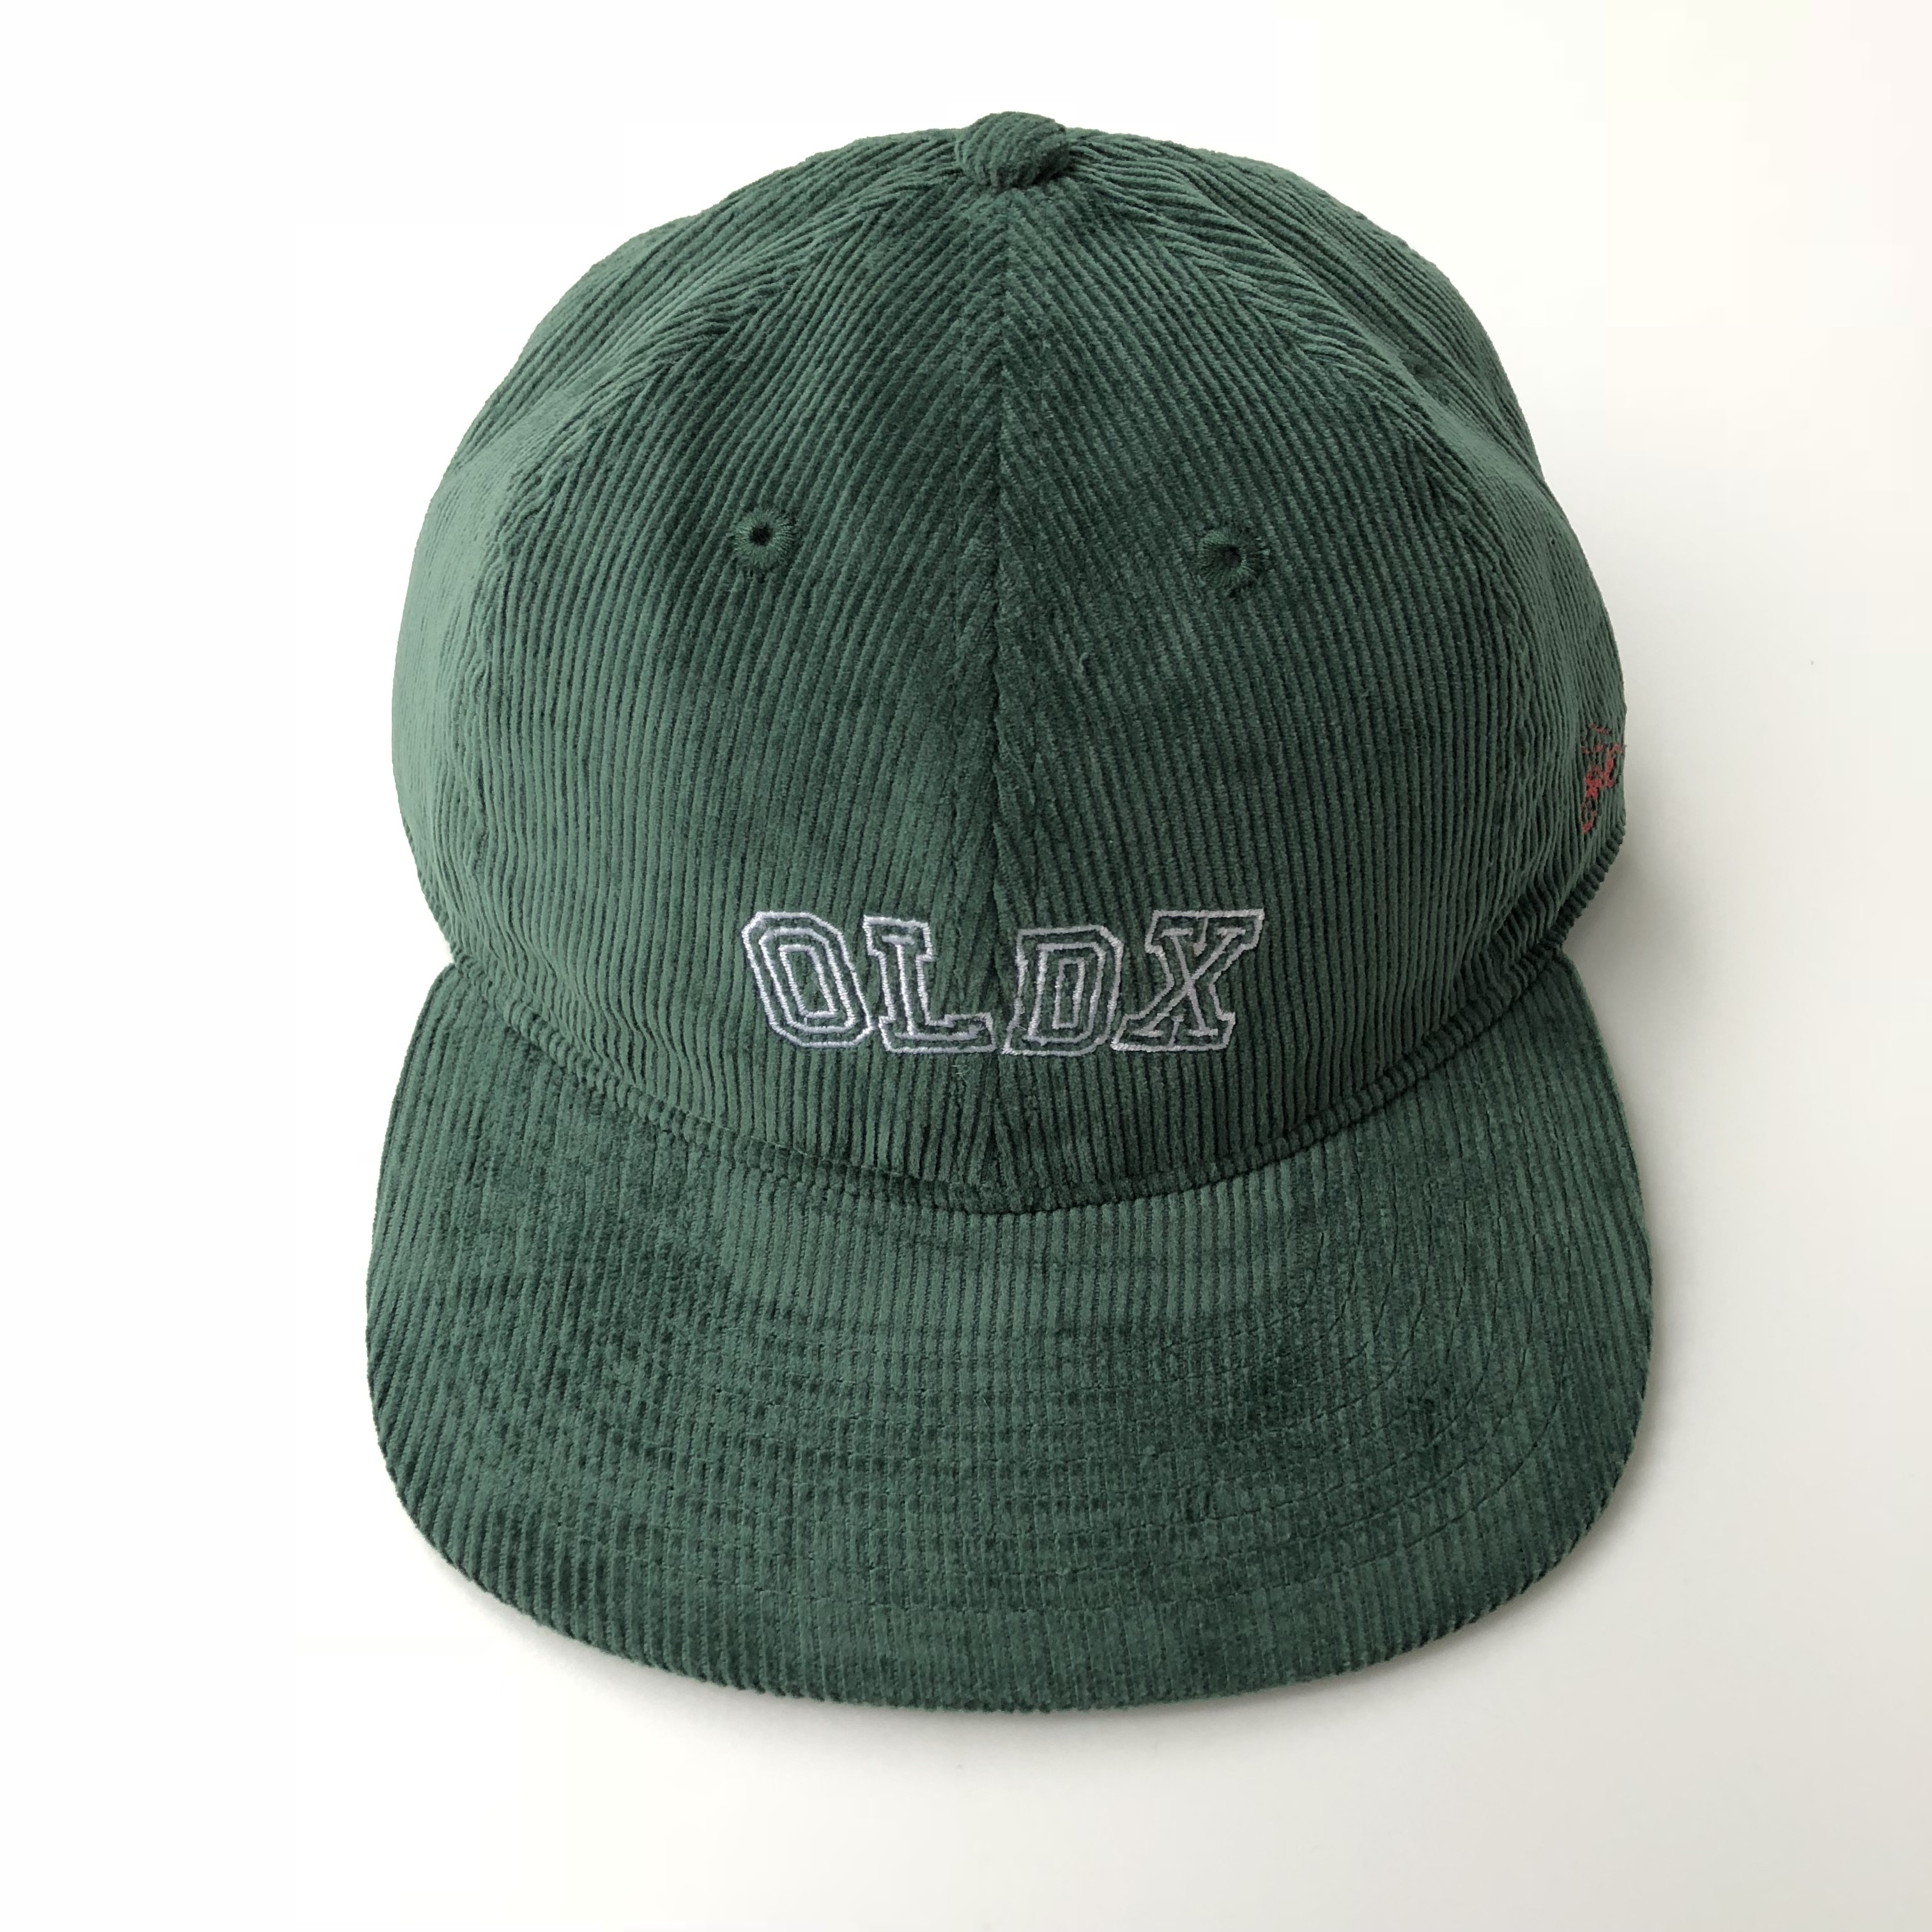 Life goes on corduroy cap GREEN